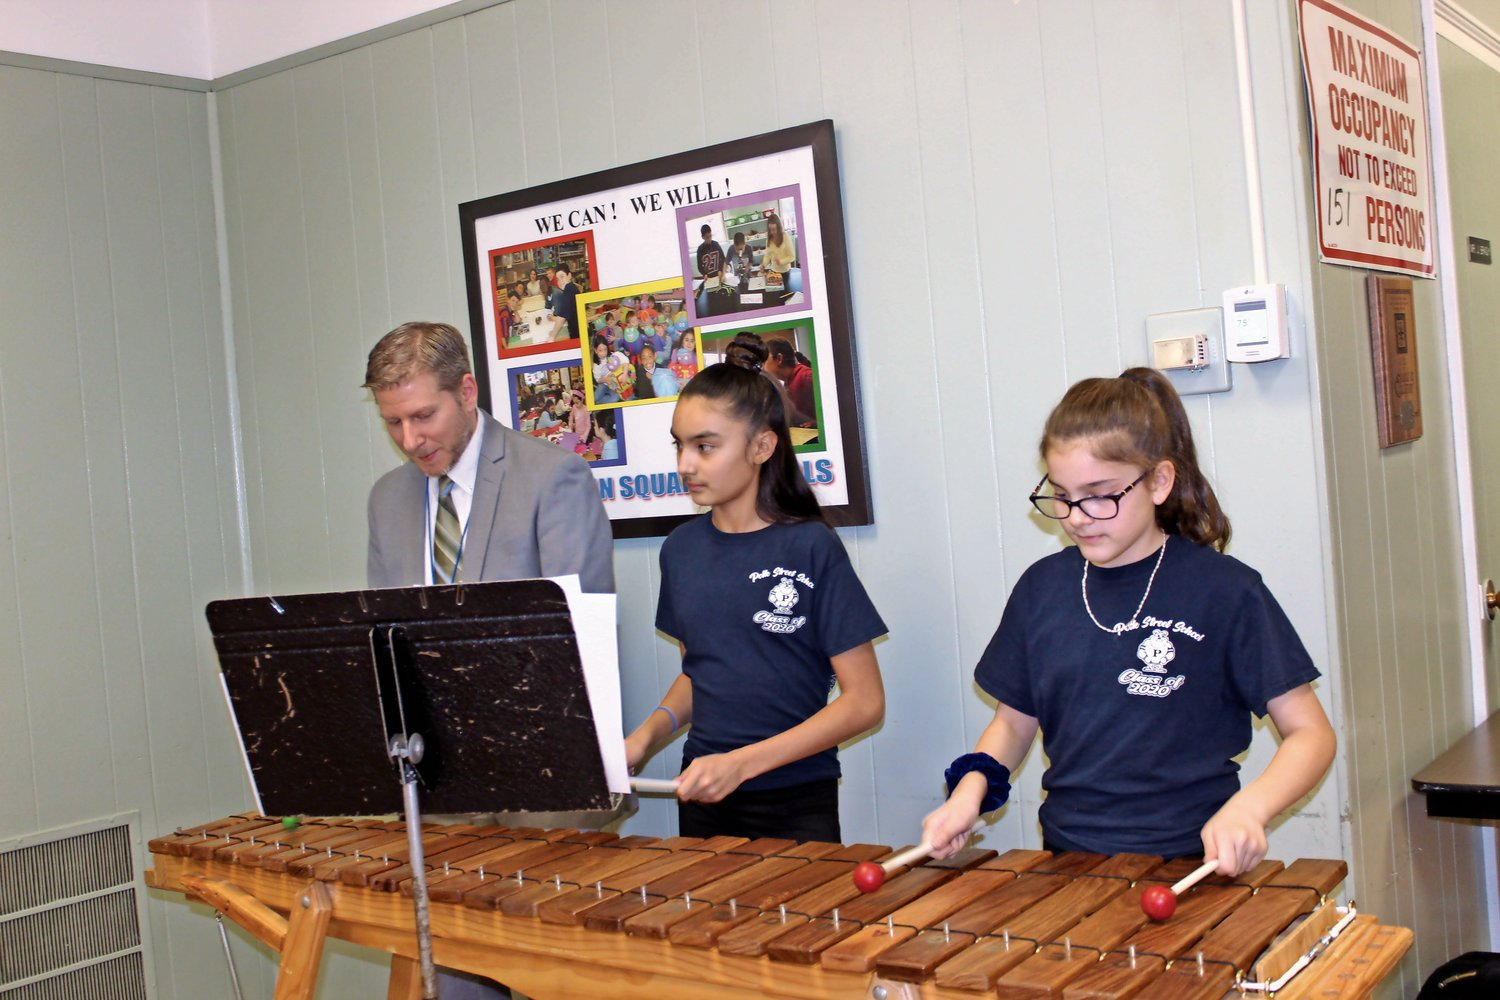 Superintendent Jared Bloom joined Isabella Wick and Victoria Kennedy on the marimbas at the Franklin Square School District Board of Education meeting on Dec. 4.